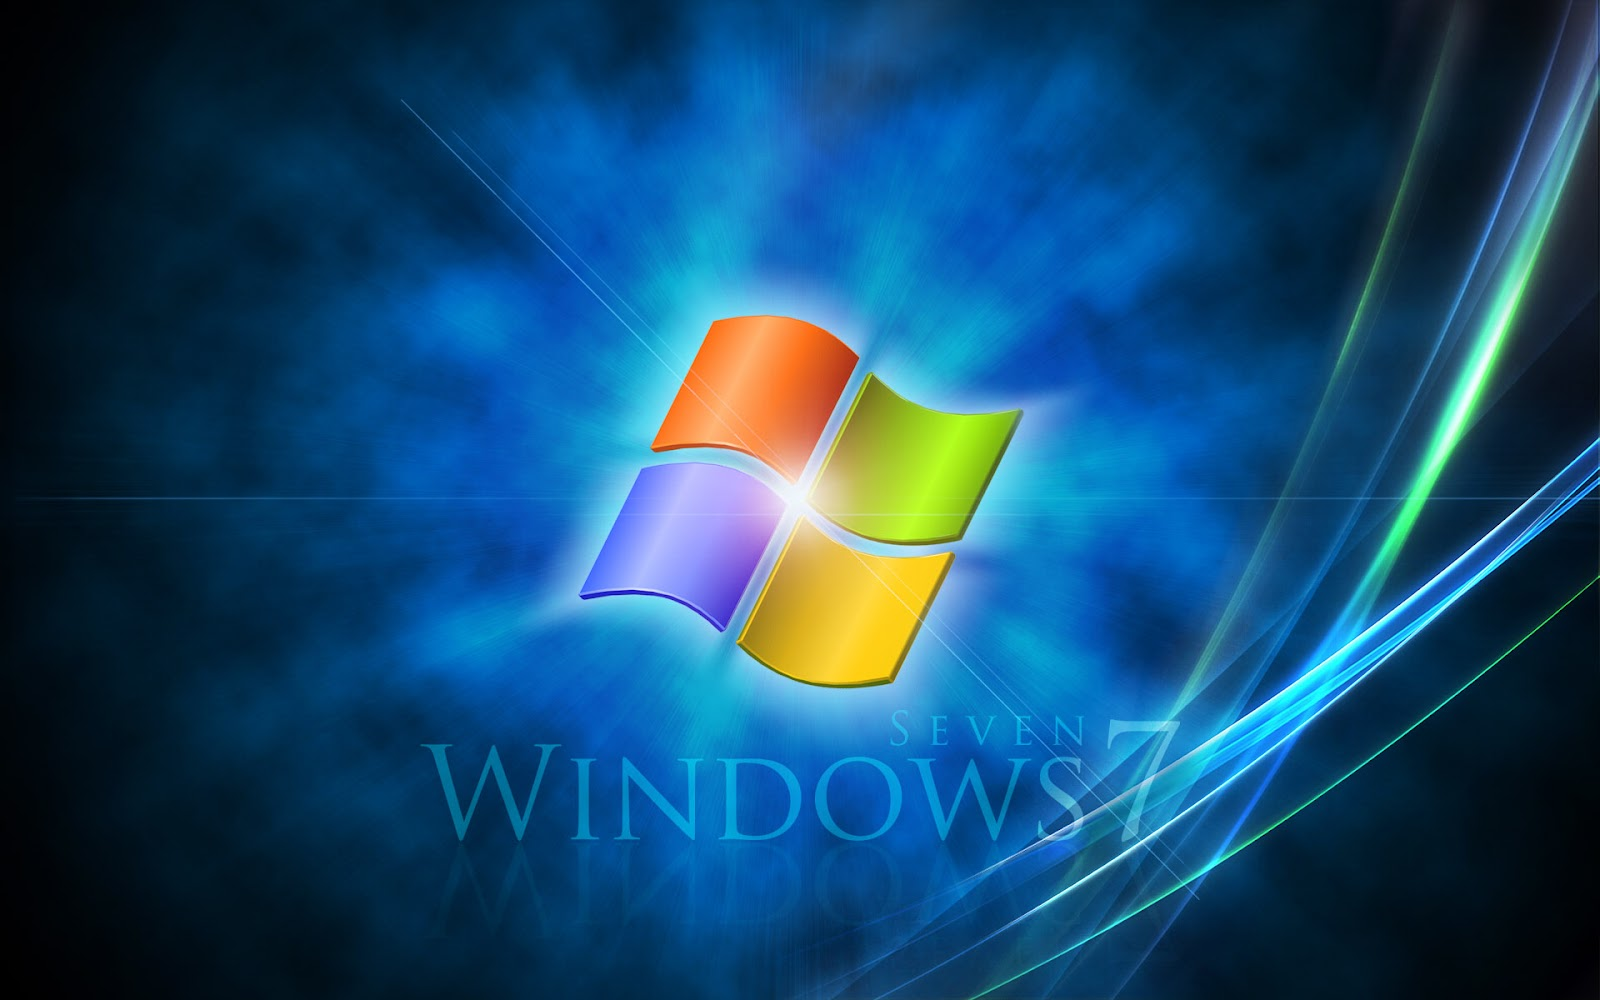 Free Live Wallpapers for Desktop Windows 7